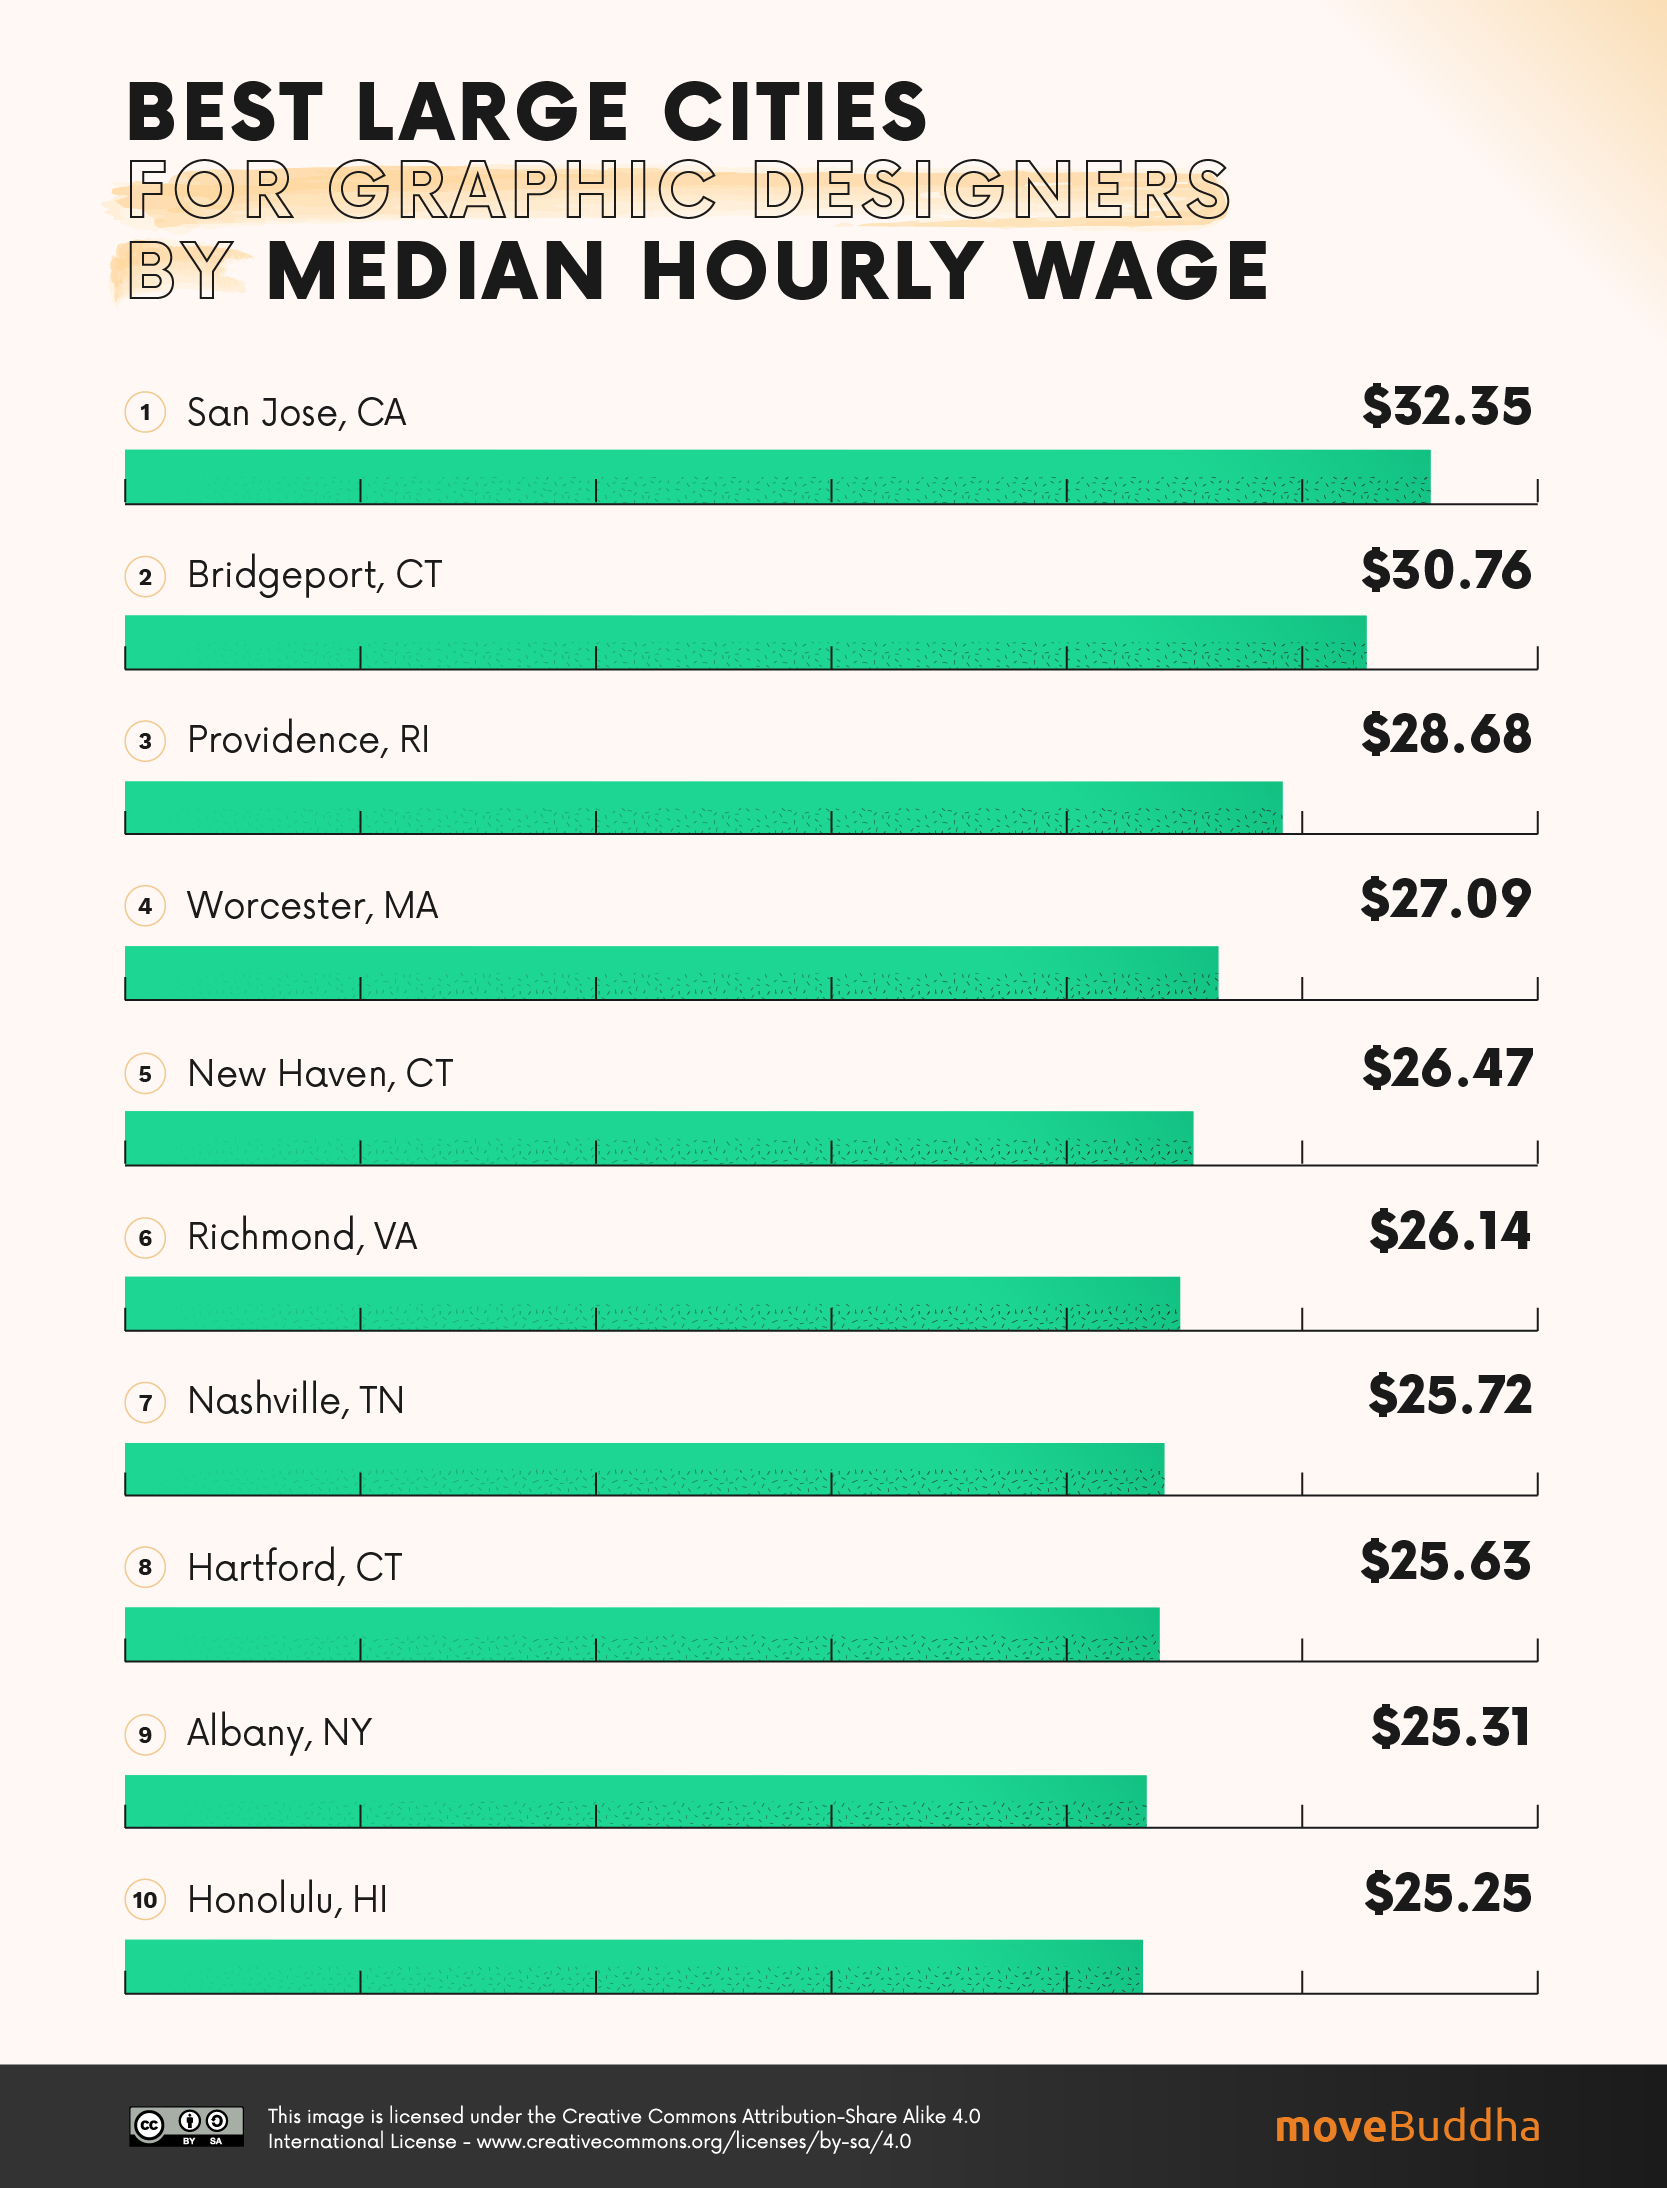 Best Large Cities for Graphic Designers by Median Hourly Wage